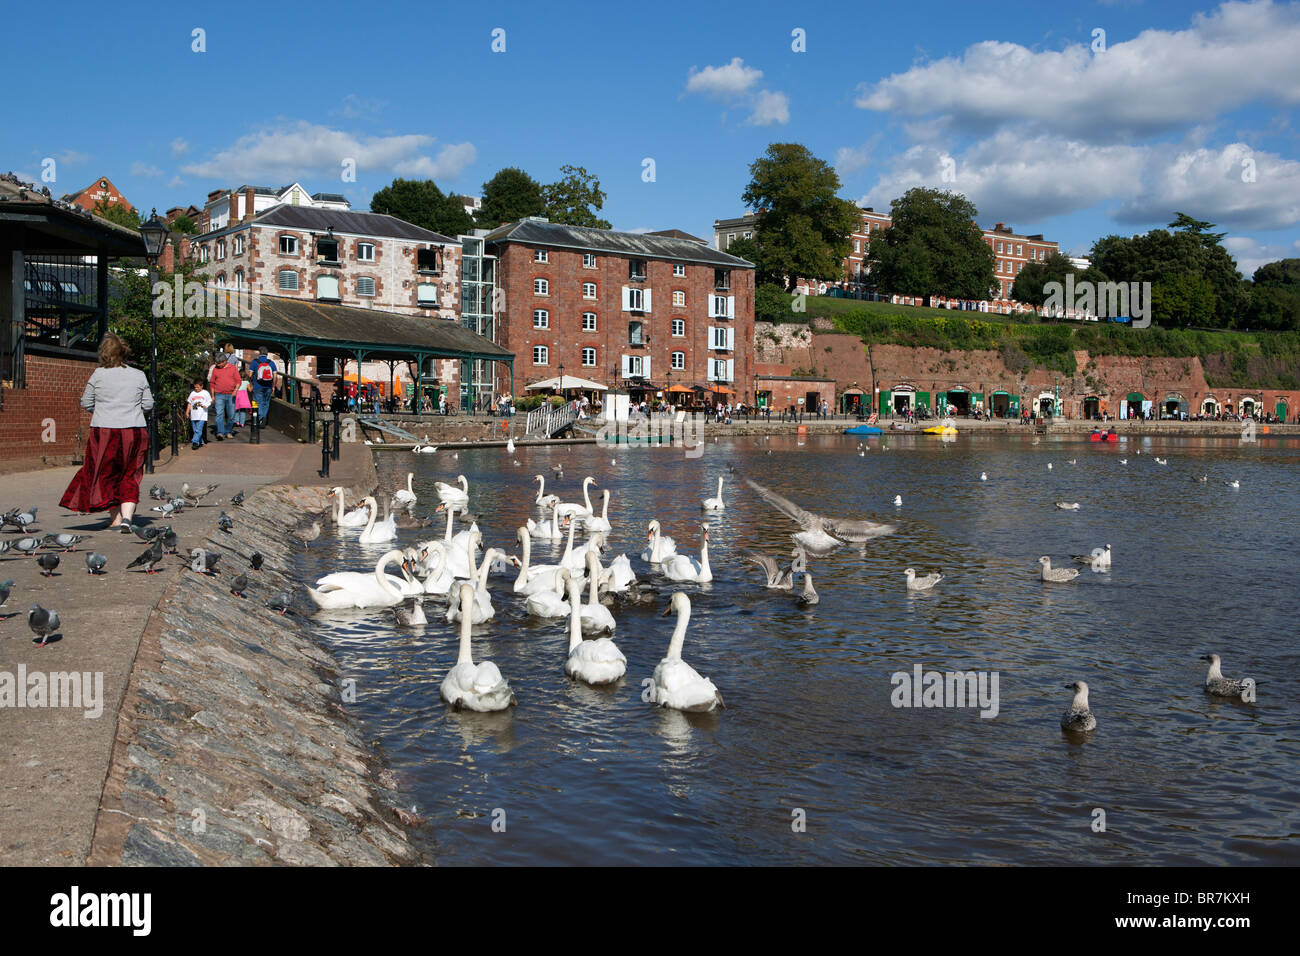 The Quayside and River Exe in Exeter - Stock Image